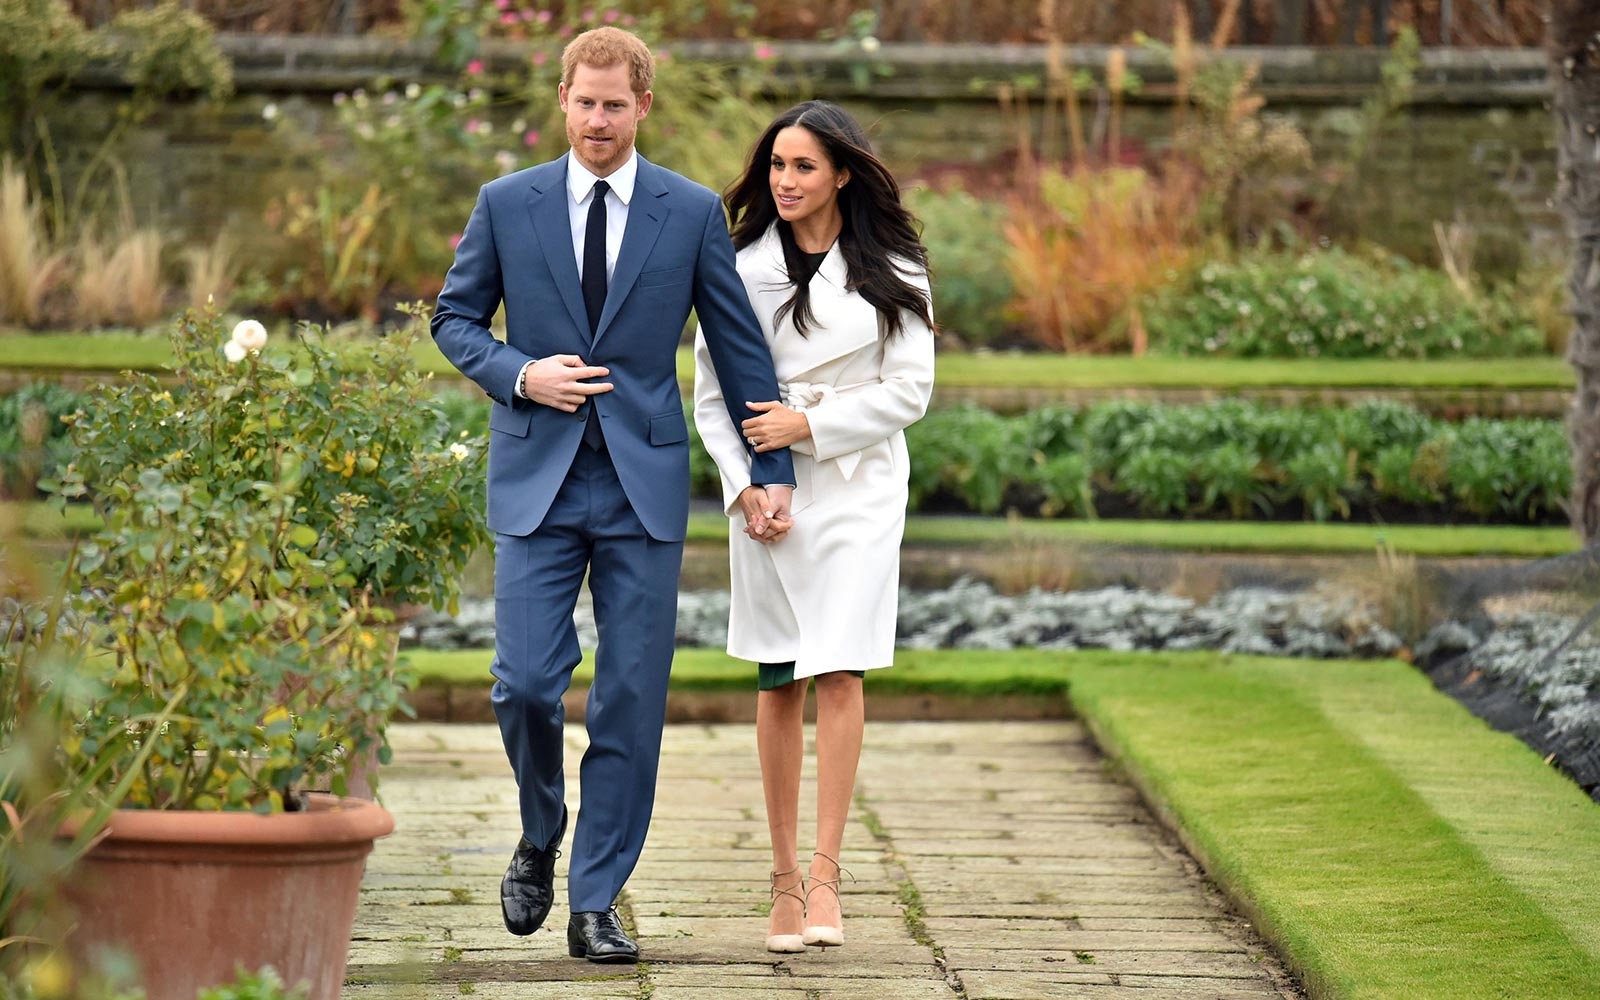 Prince Harry and Meghan Markle Have Officially Sent Out Their Royal Wedding Invitations